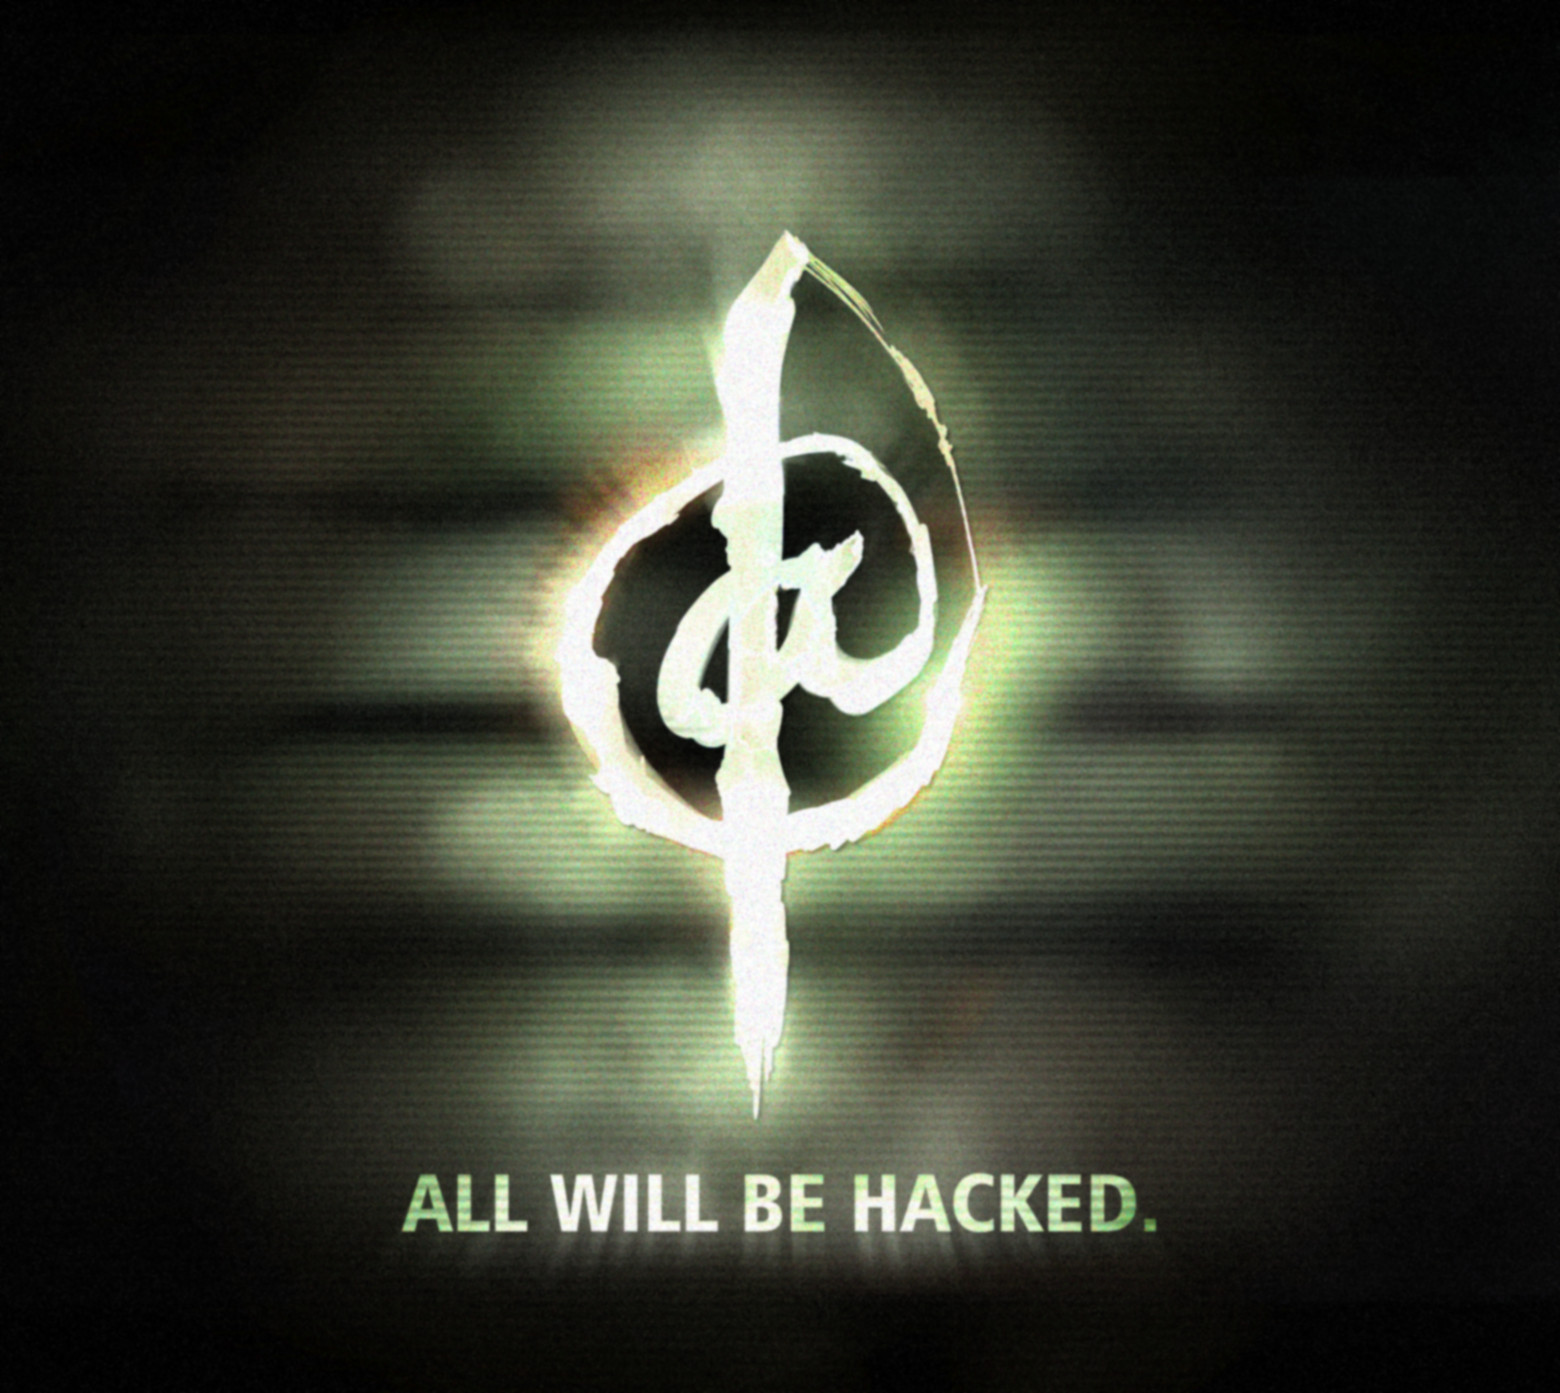 ALL WILL BE HACKED.